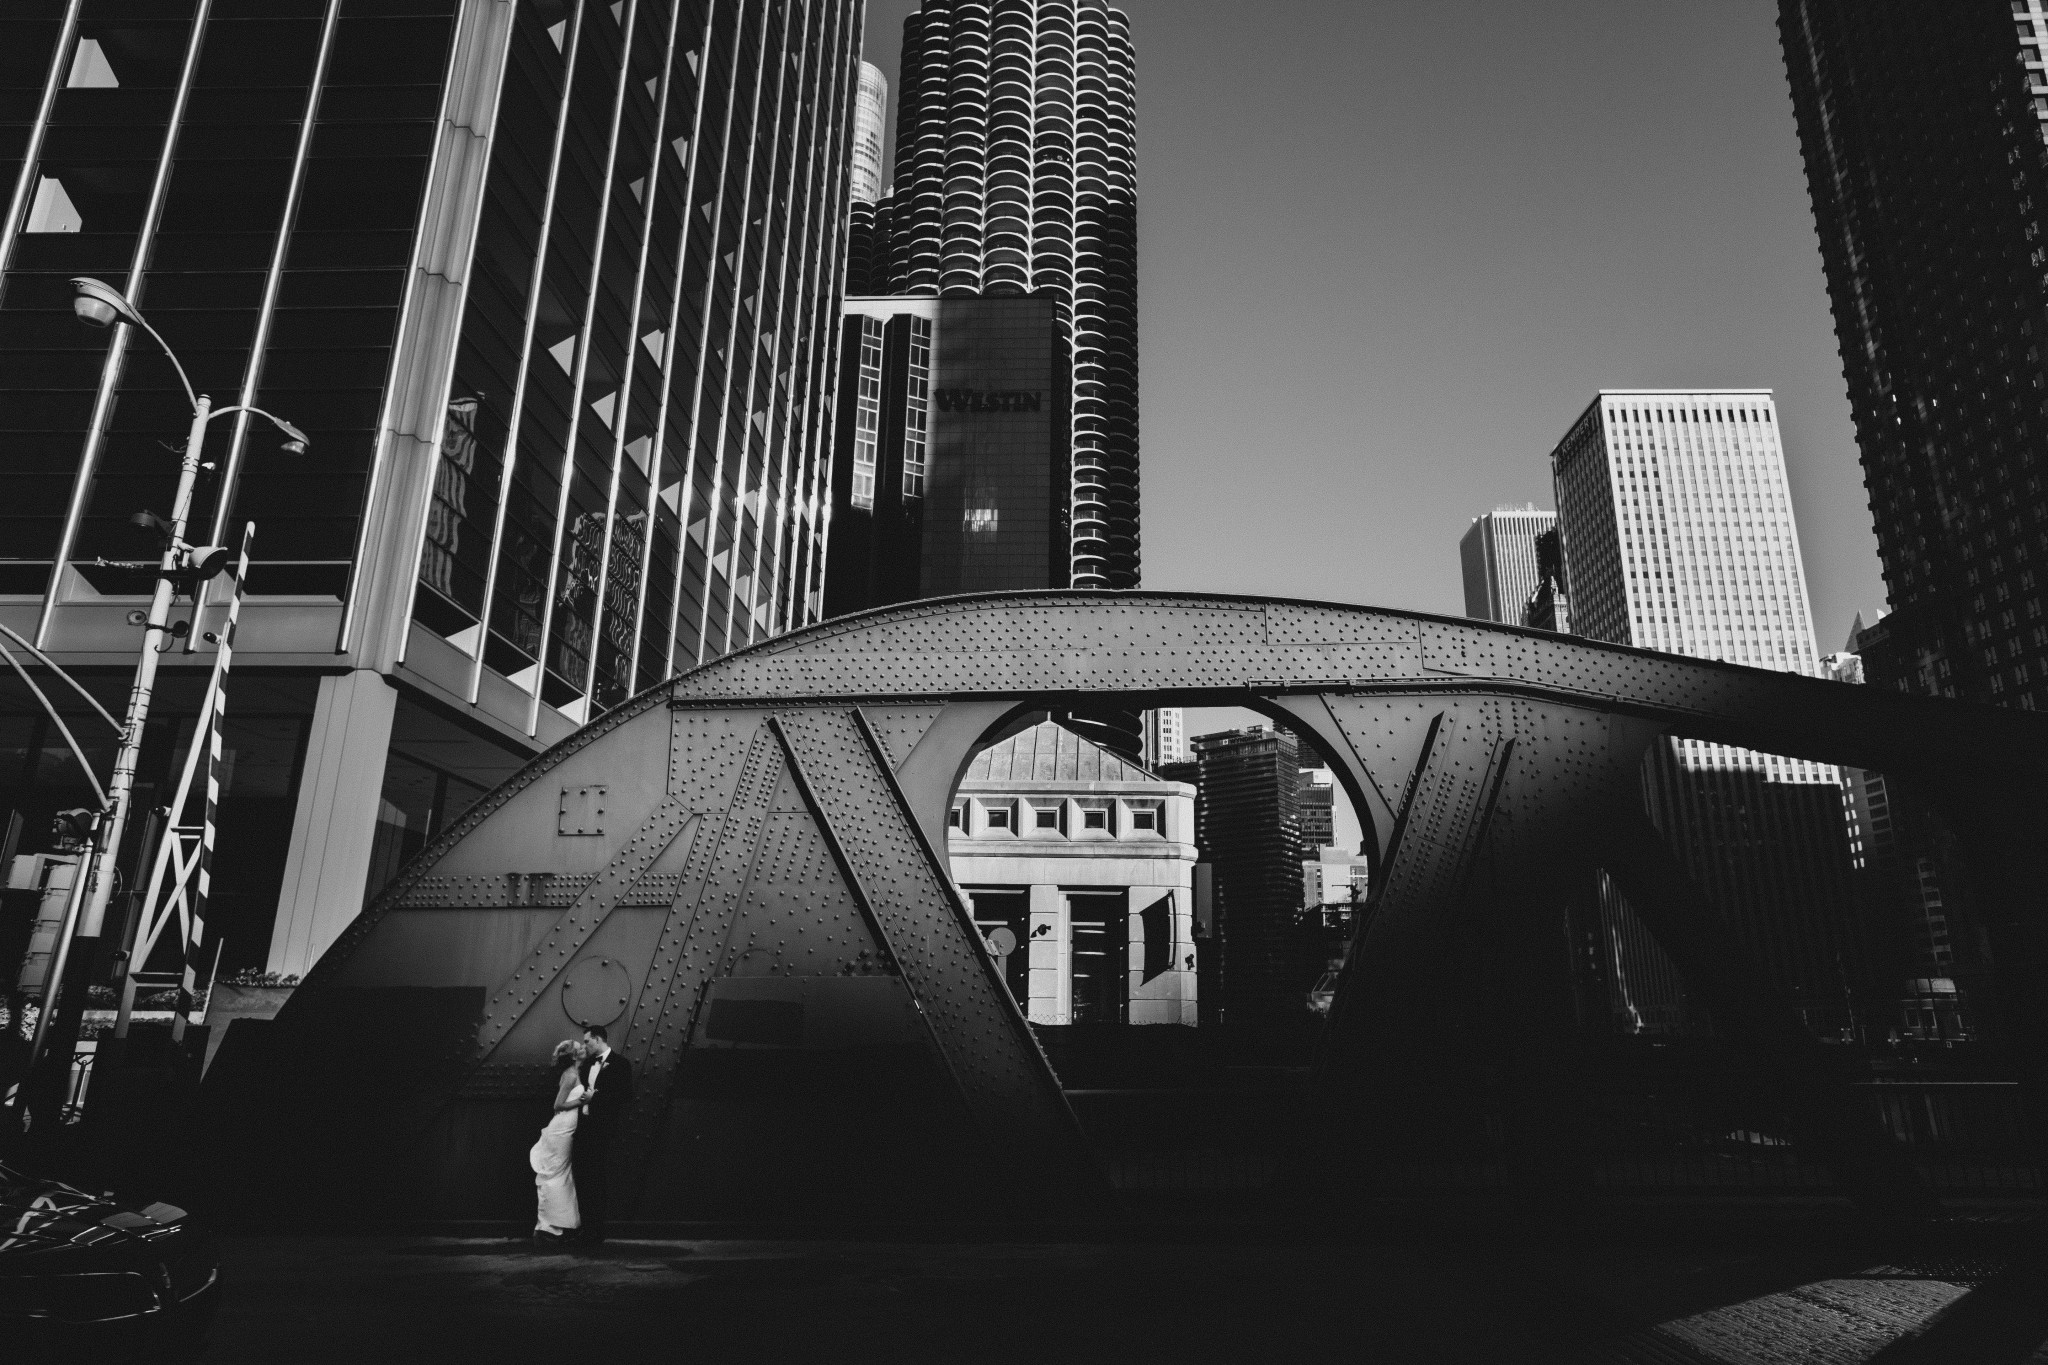 Chicago Bride on a Bridge at Dusk in Black & White by Wes Craft